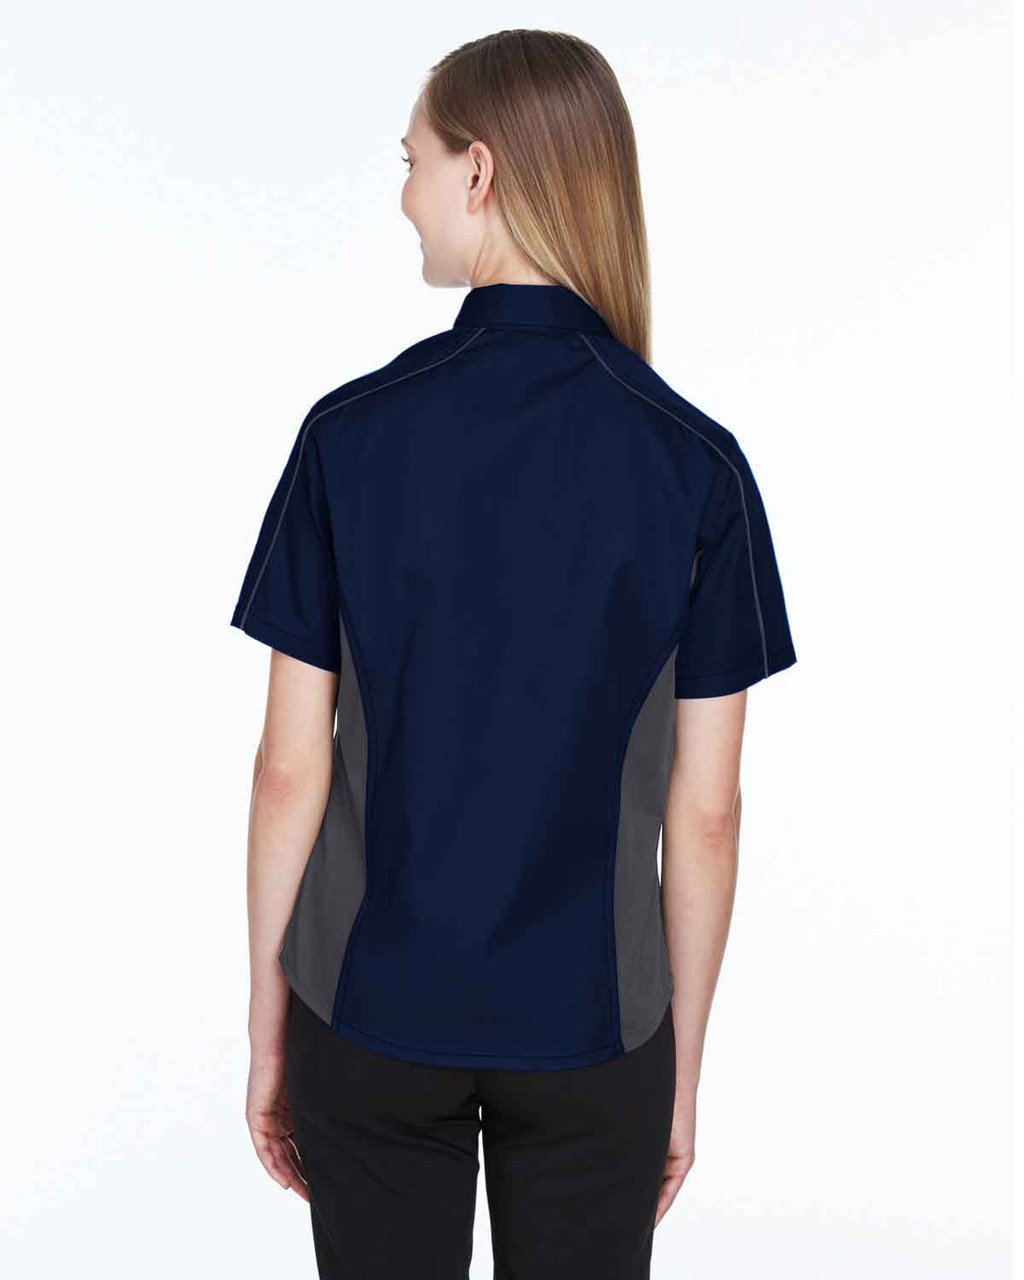 Classic Navy/Carbon - Back, 77042 North End Fuse Colourblock Twill Shirt | BlankClothing.ca